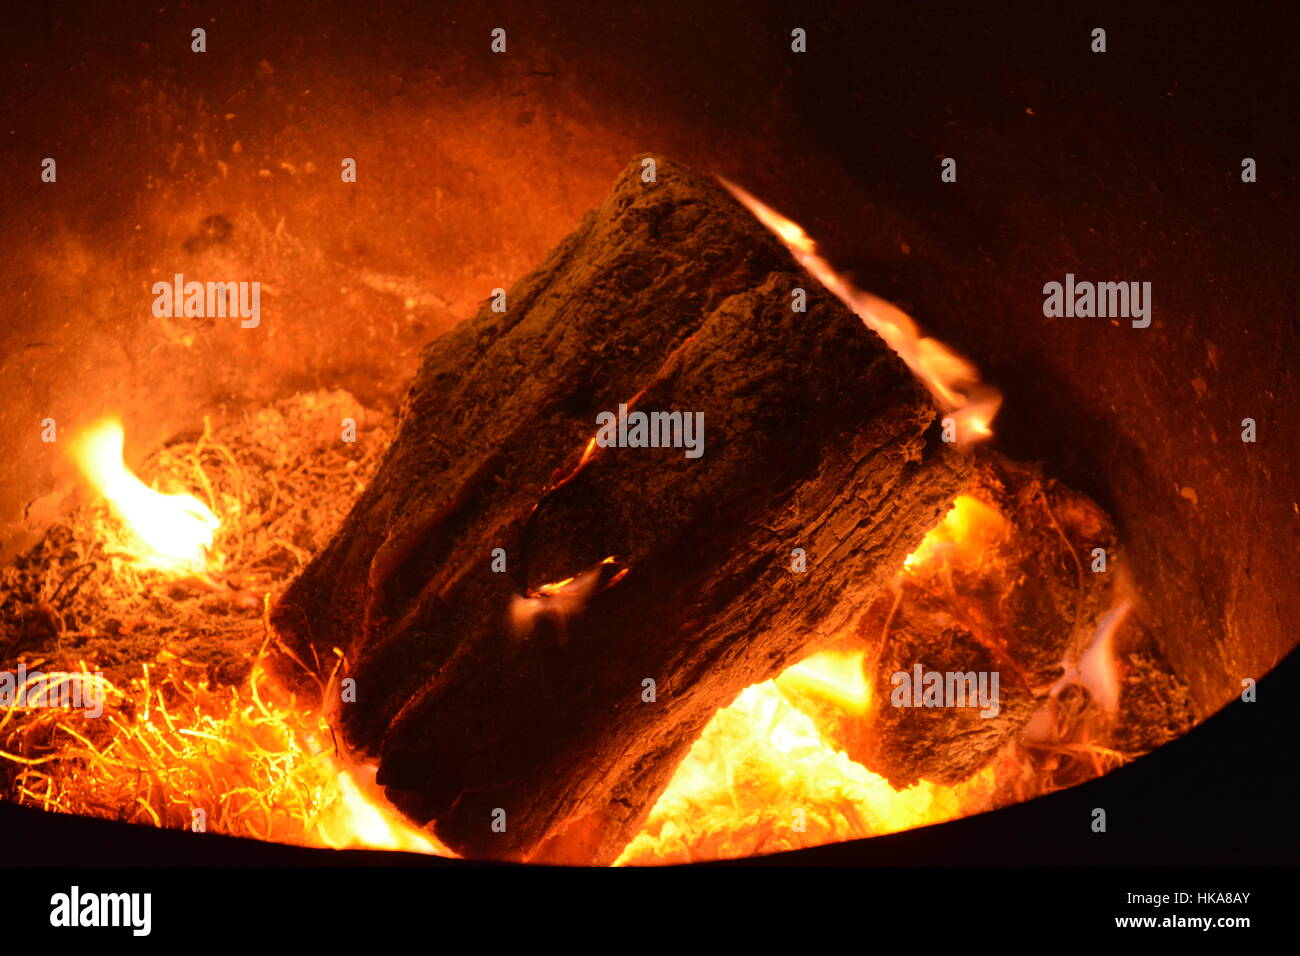 Log on fire - Stock Image